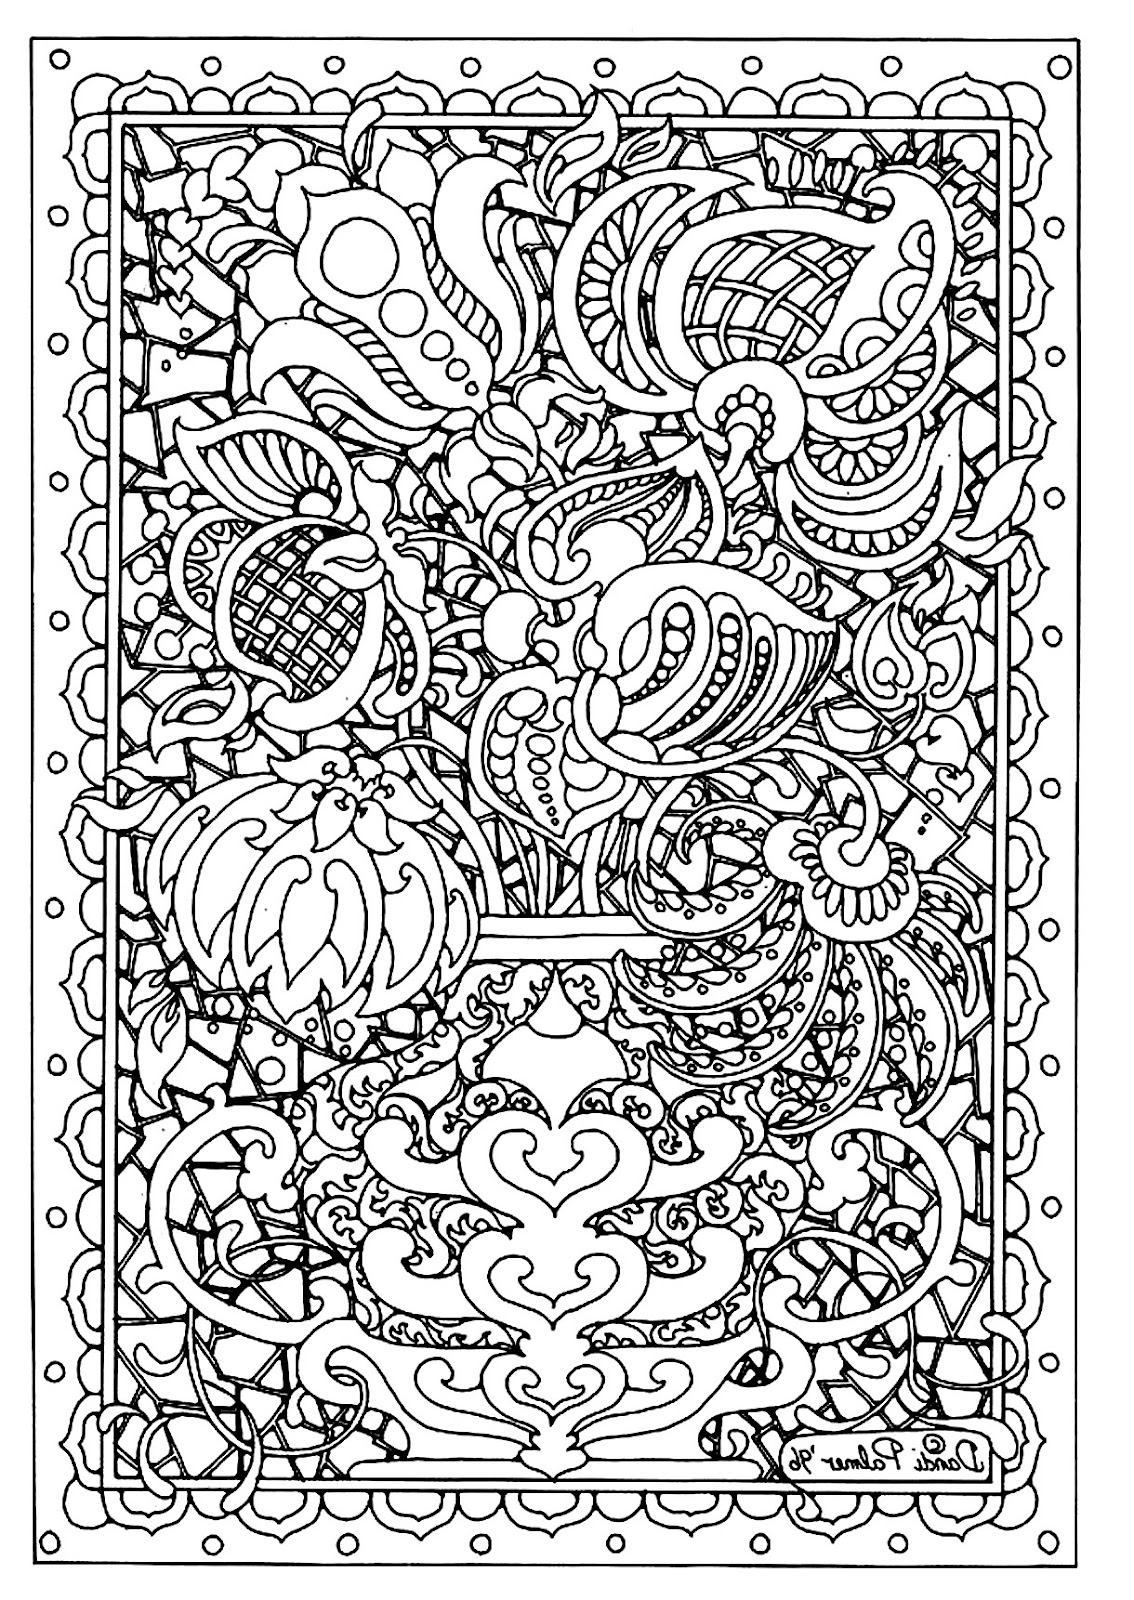 HD Difficult Coloring Sheets For Adults Free